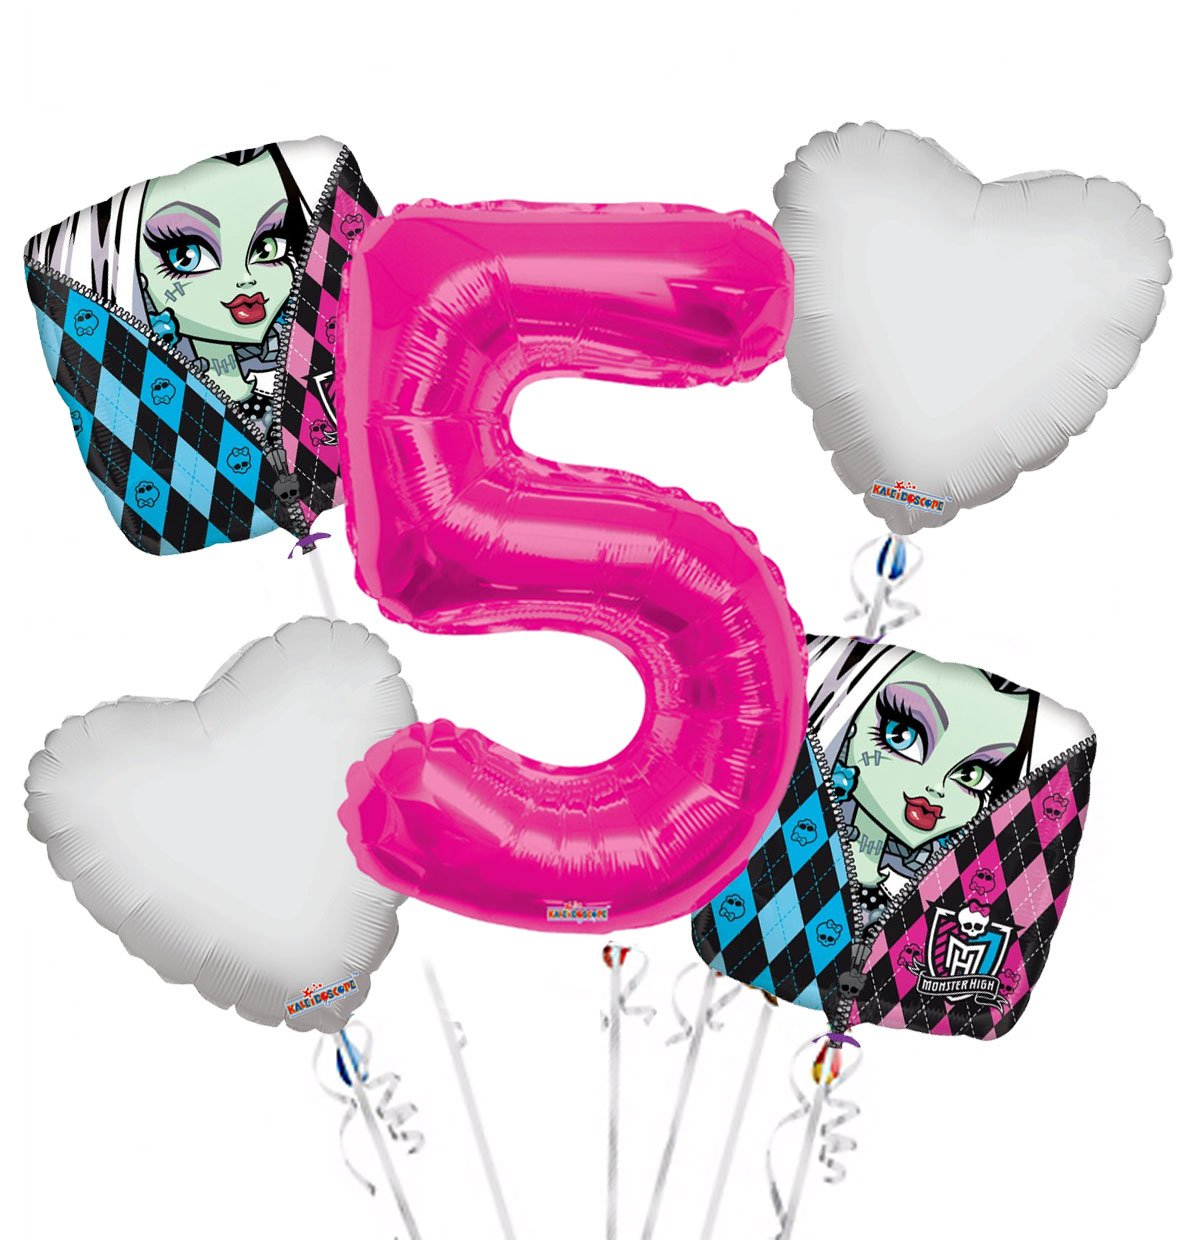 Monster High Balloon Bouquet 5th Birthday 5 pcs - Party Supplies, 1 Giant Number 5 Balloon, 34in By Viva Party